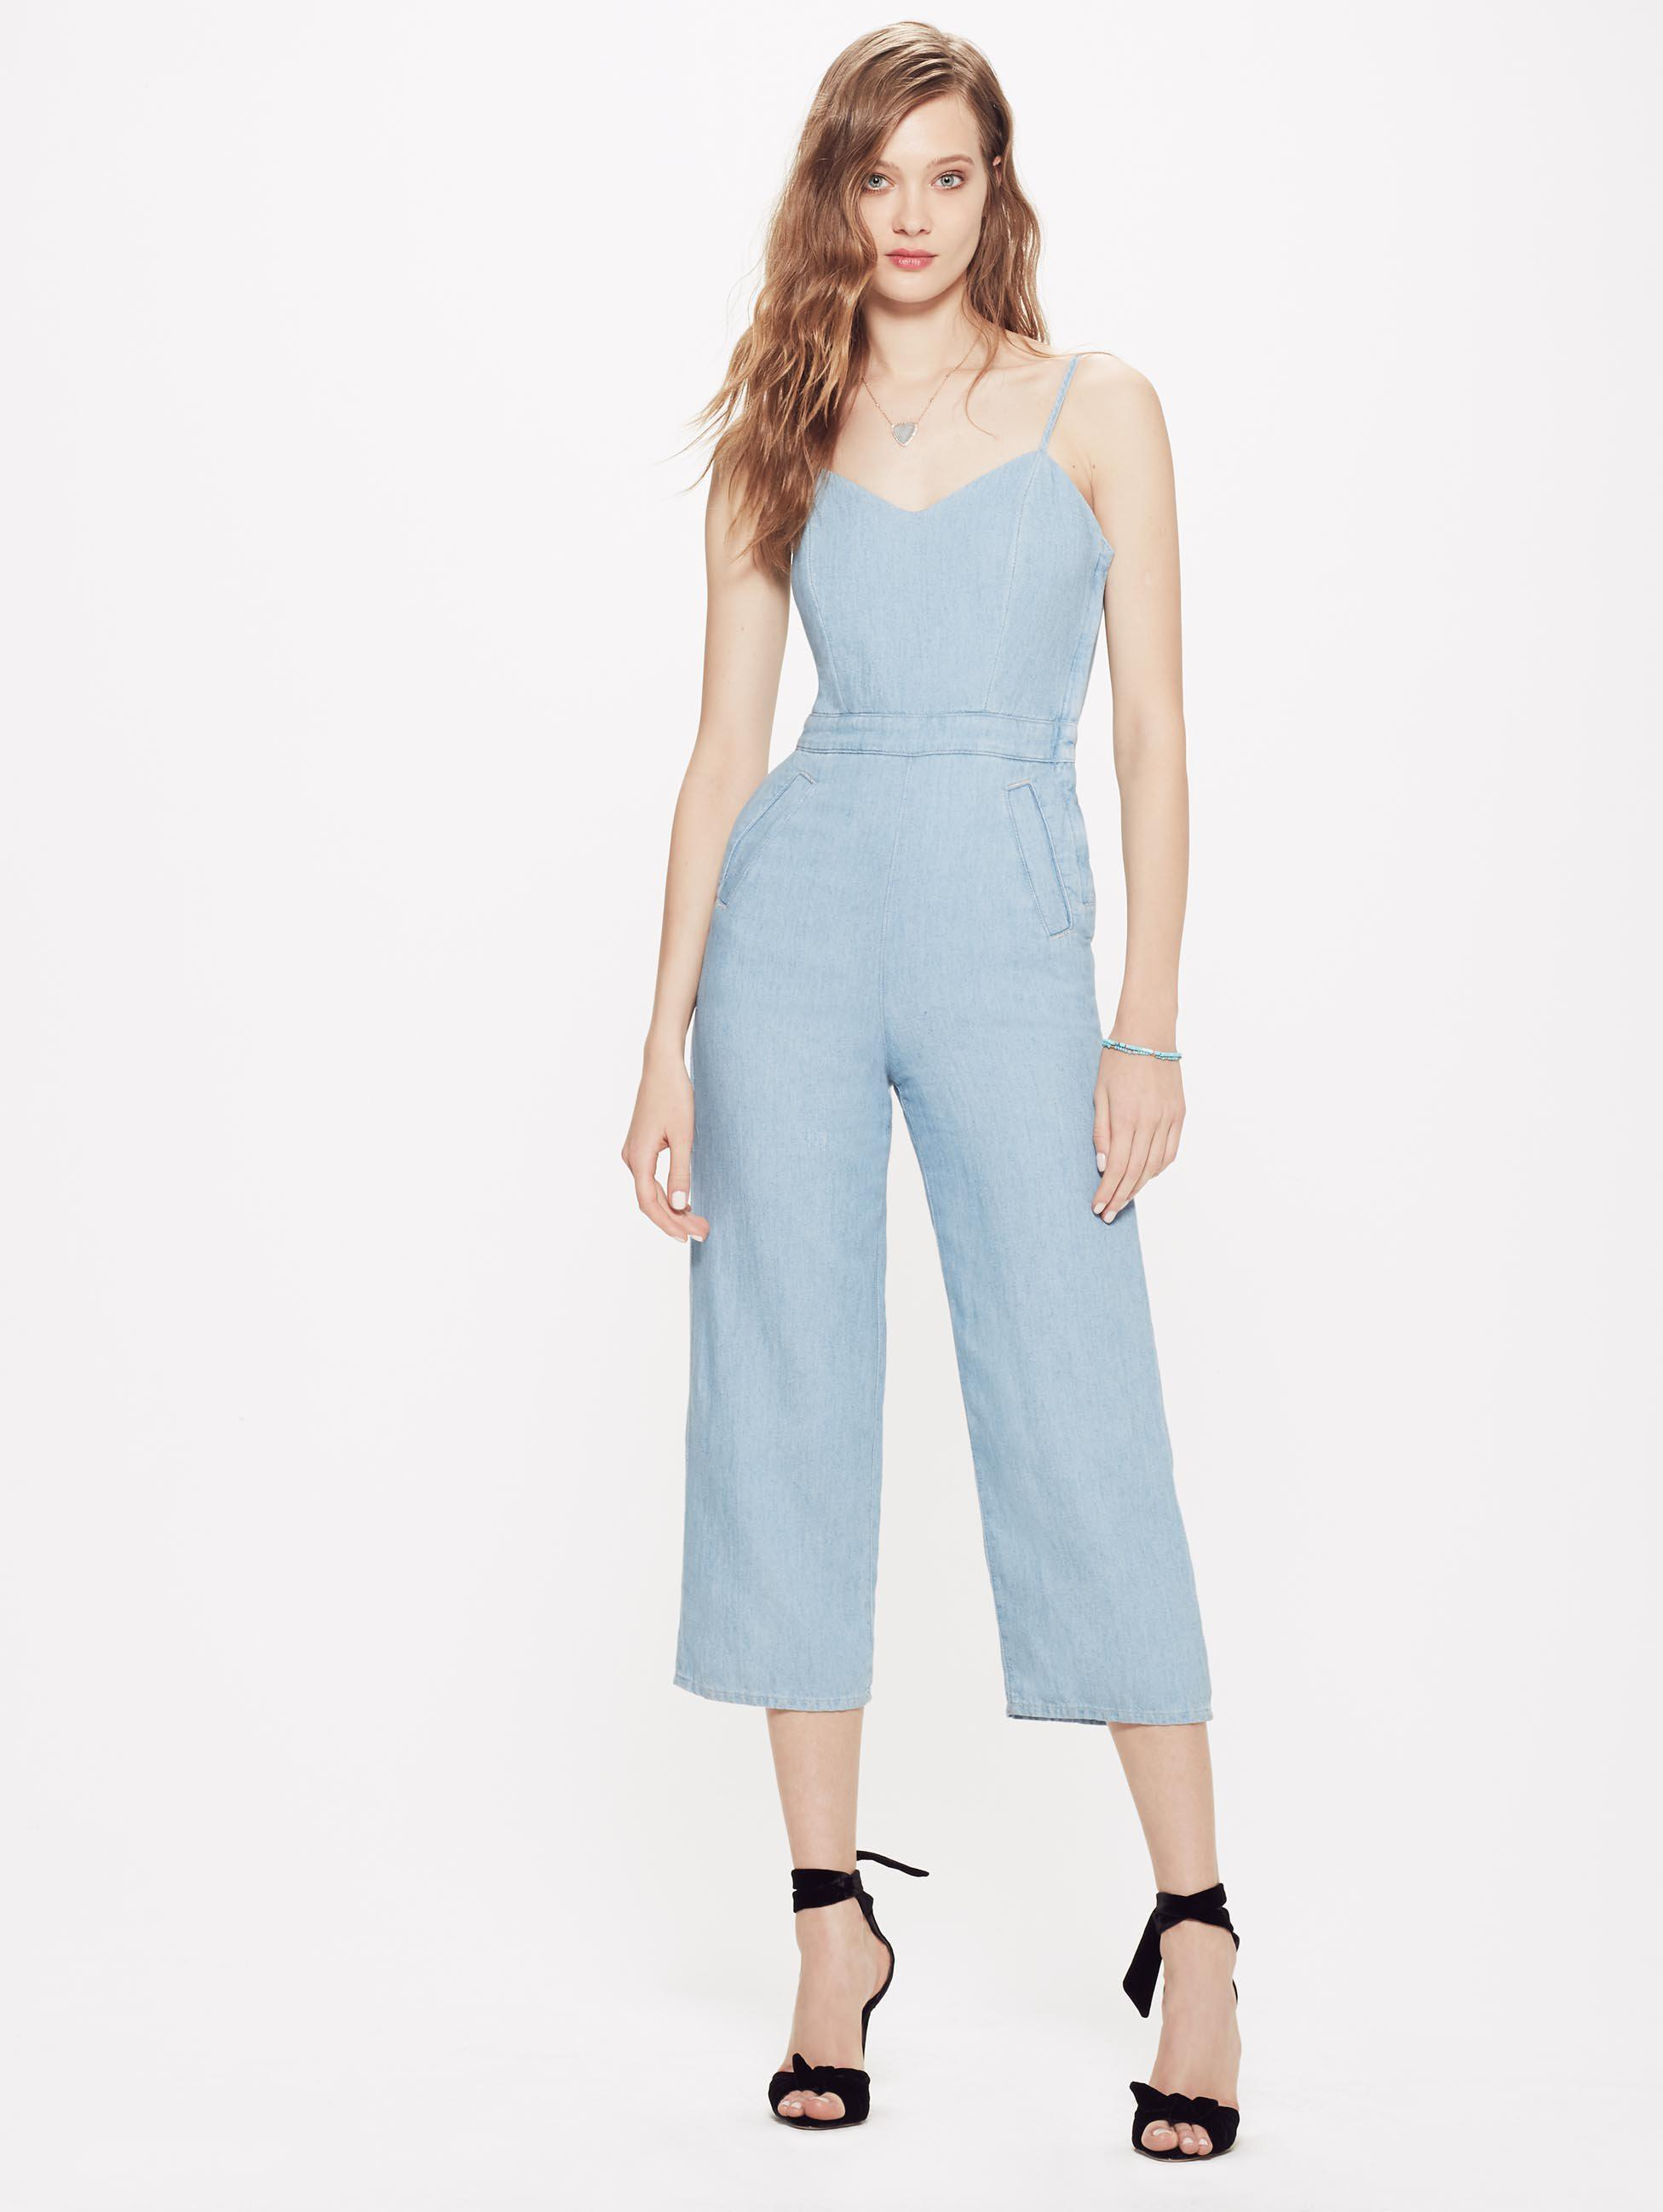 43d16ba41fa Mother Denim The Cut It Out Jumpsuit Songbird in Blue - Lyst